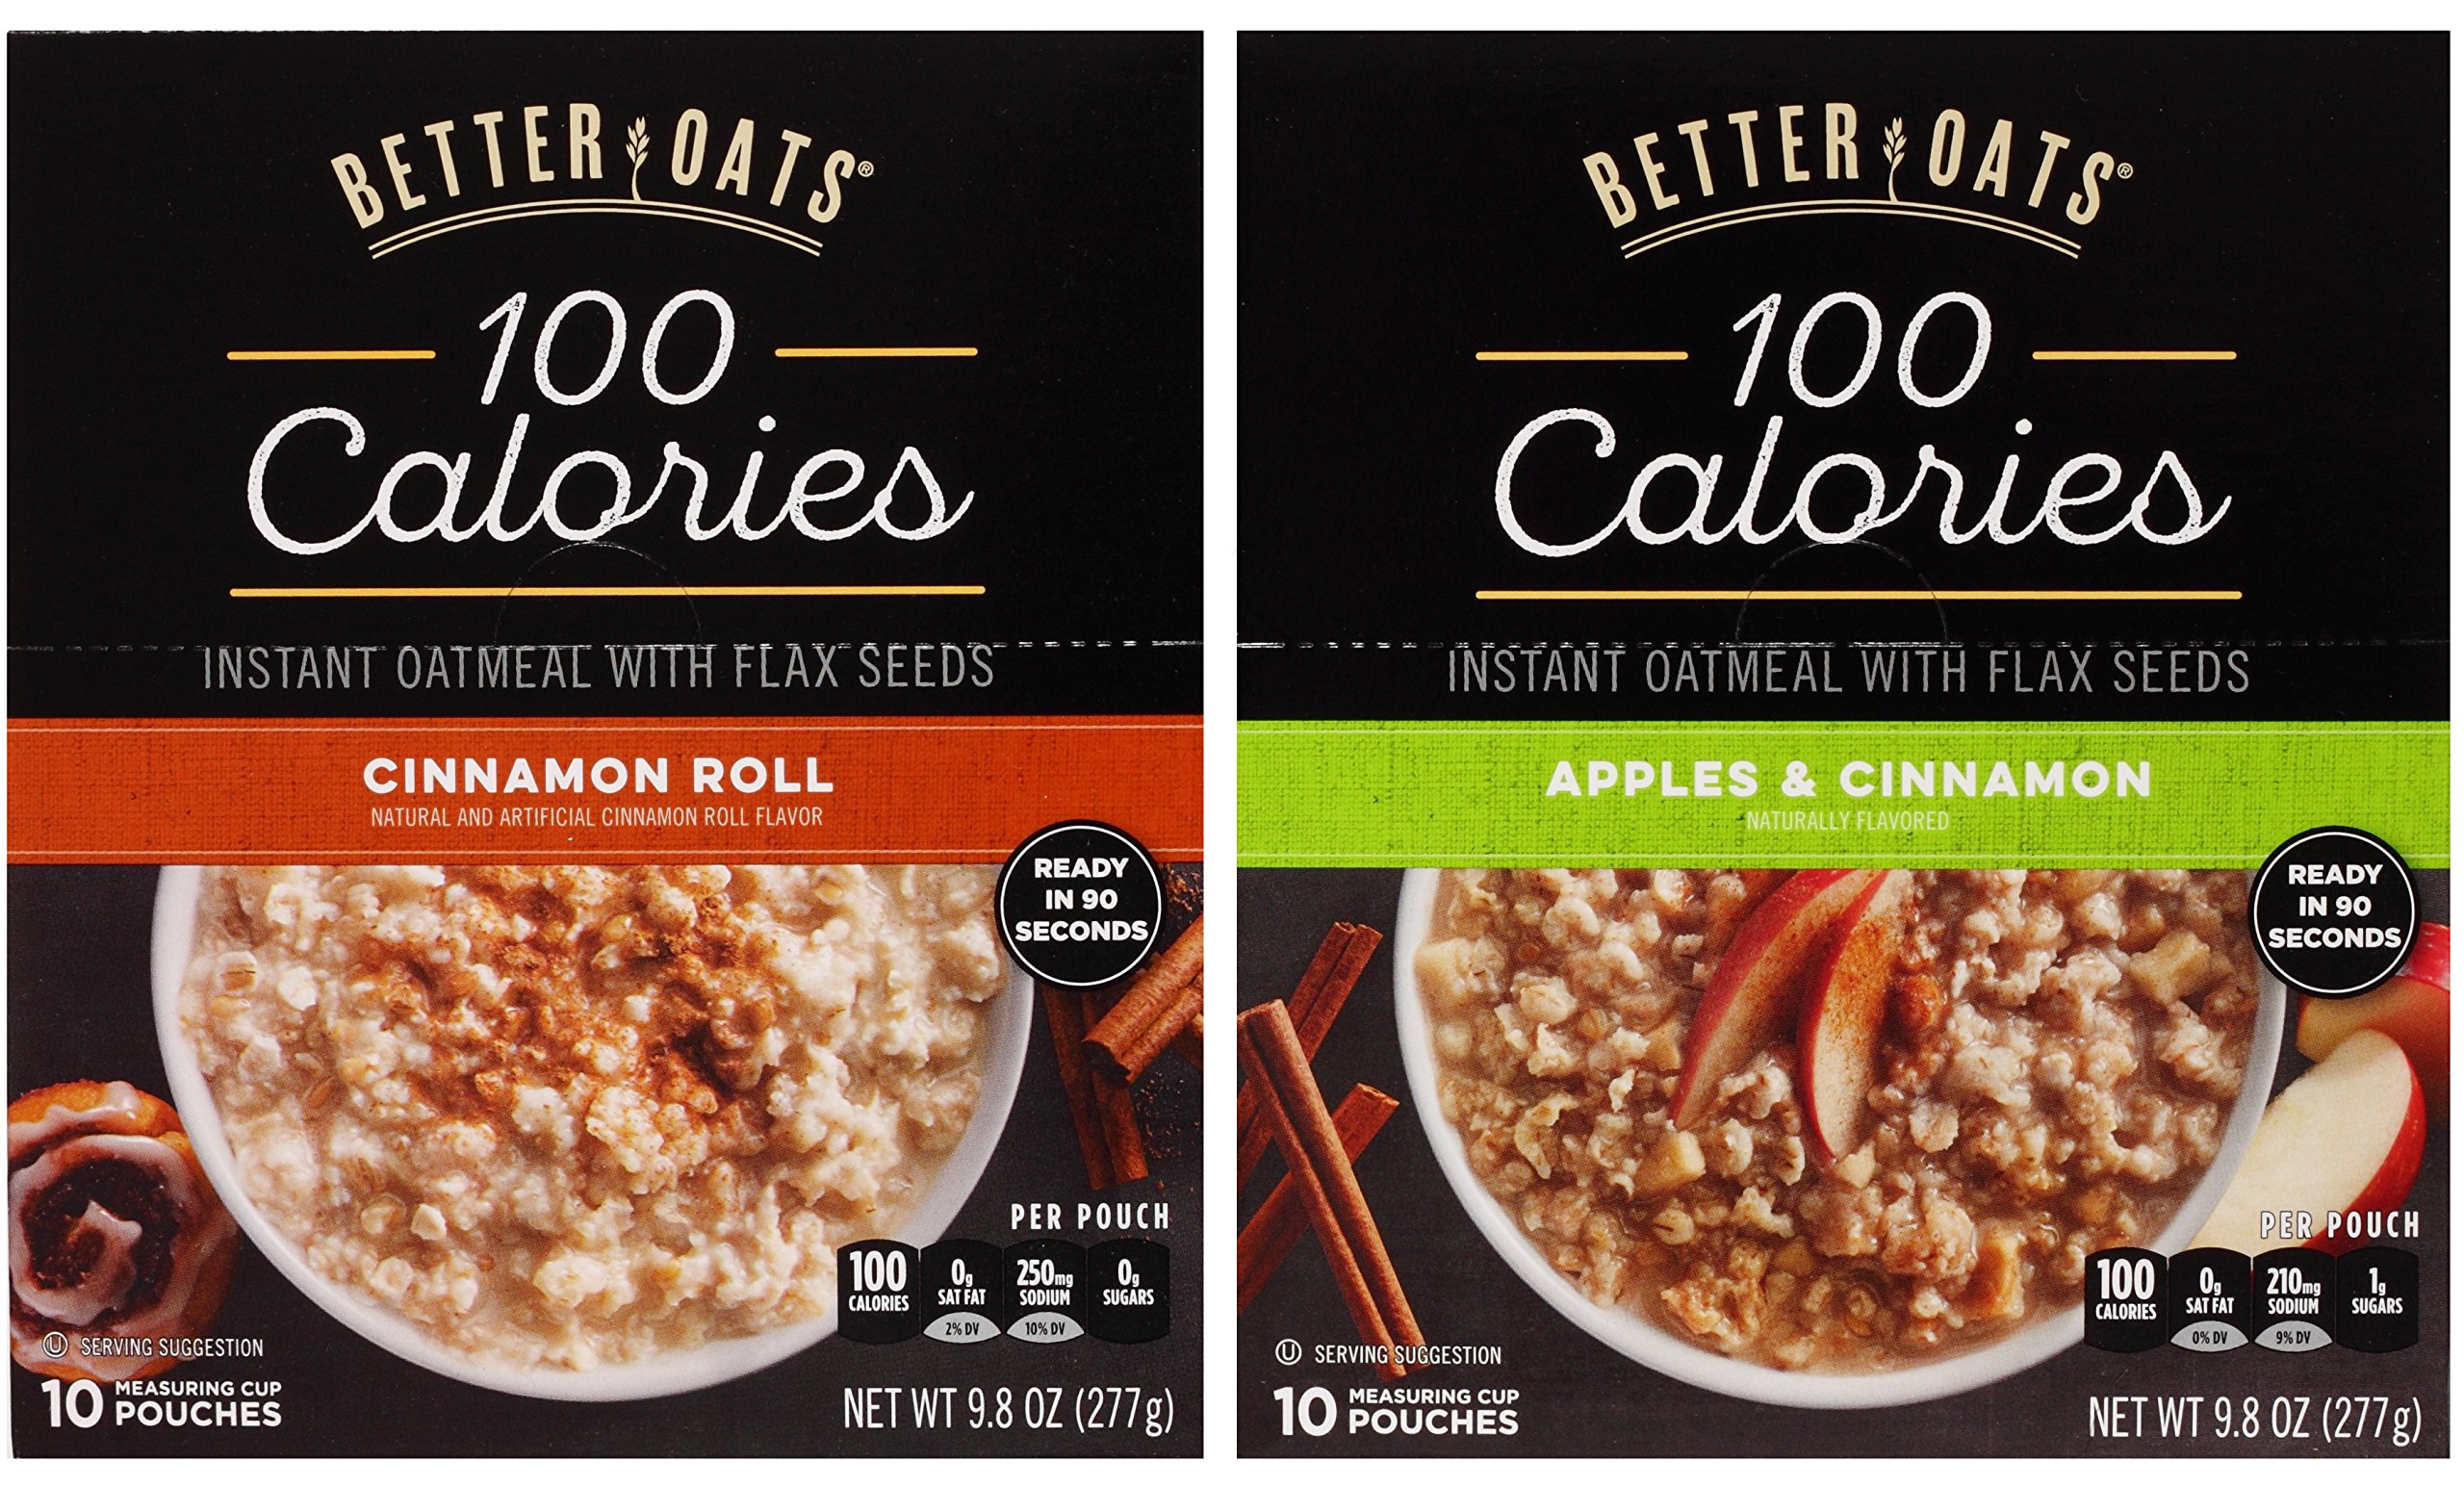 Better Oats Oat Fit Bundle: (1) Cinnamon Roll 9.8oz, (1) Apples & Cinnamon 9.8oz (2 Boxes Total) by Better Oats